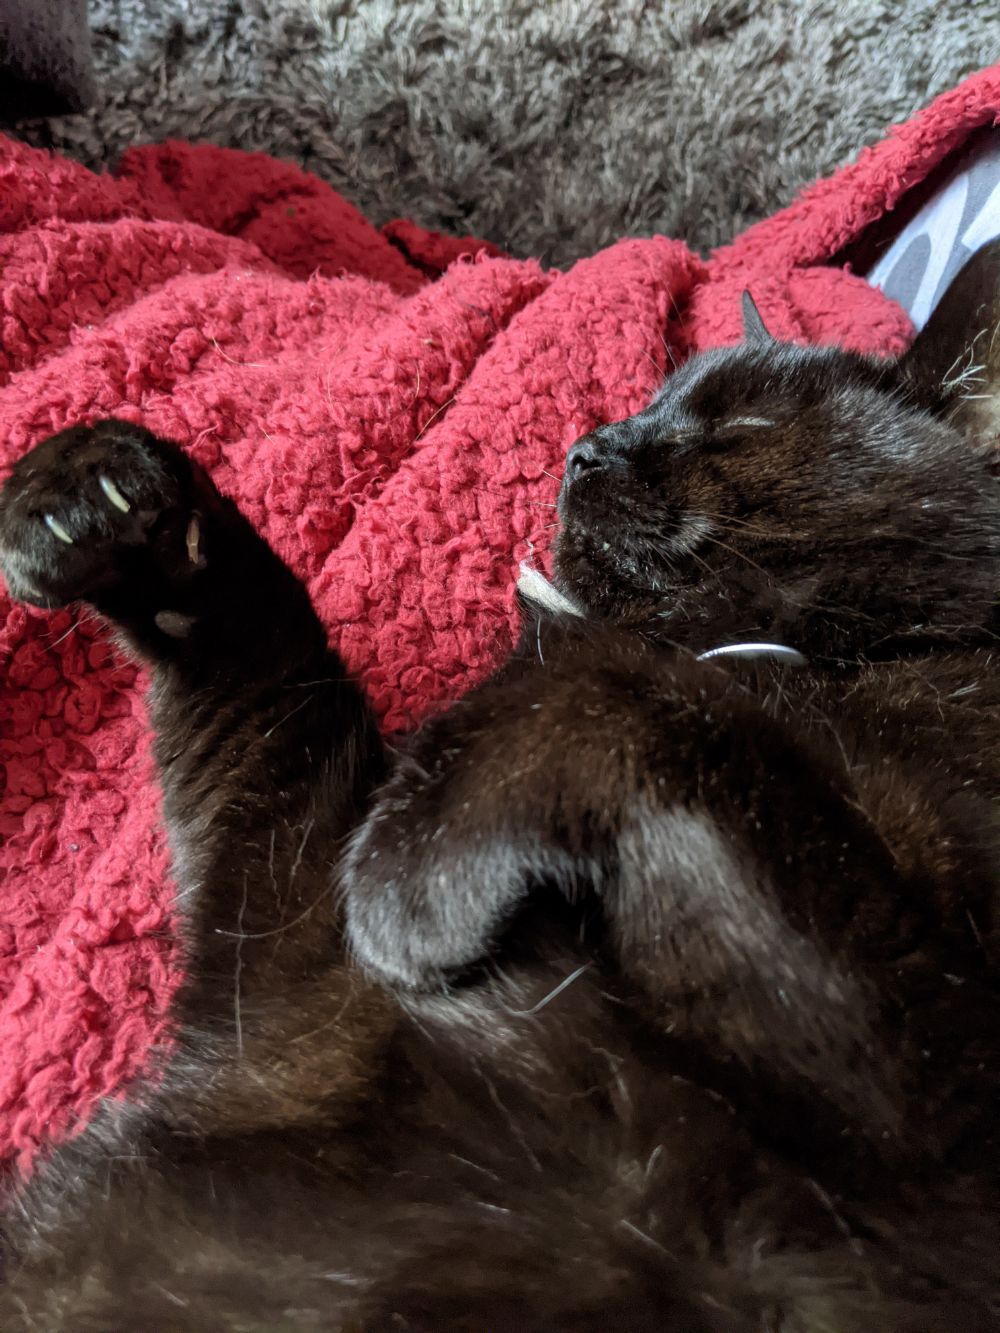 A black cat, lying on his back on a red blanket, with his paws super curled